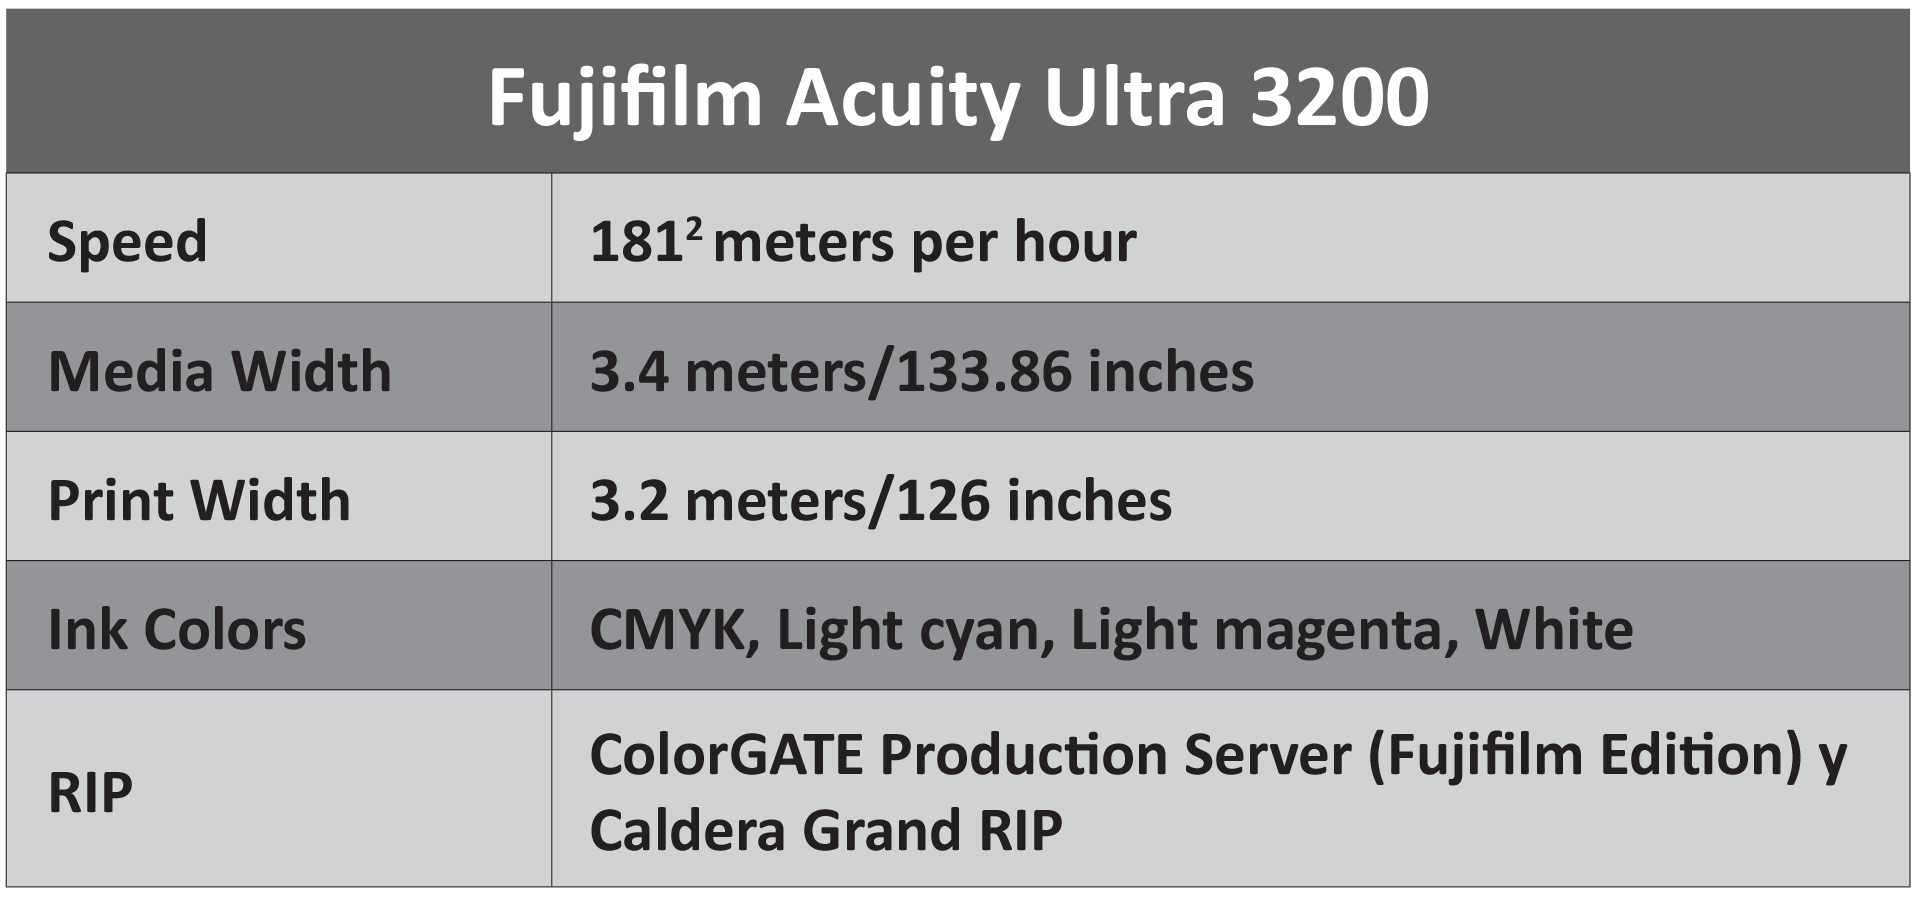 FUJIFILM THE EMPIRE STRIKES BACK: Acuity Ultra Series